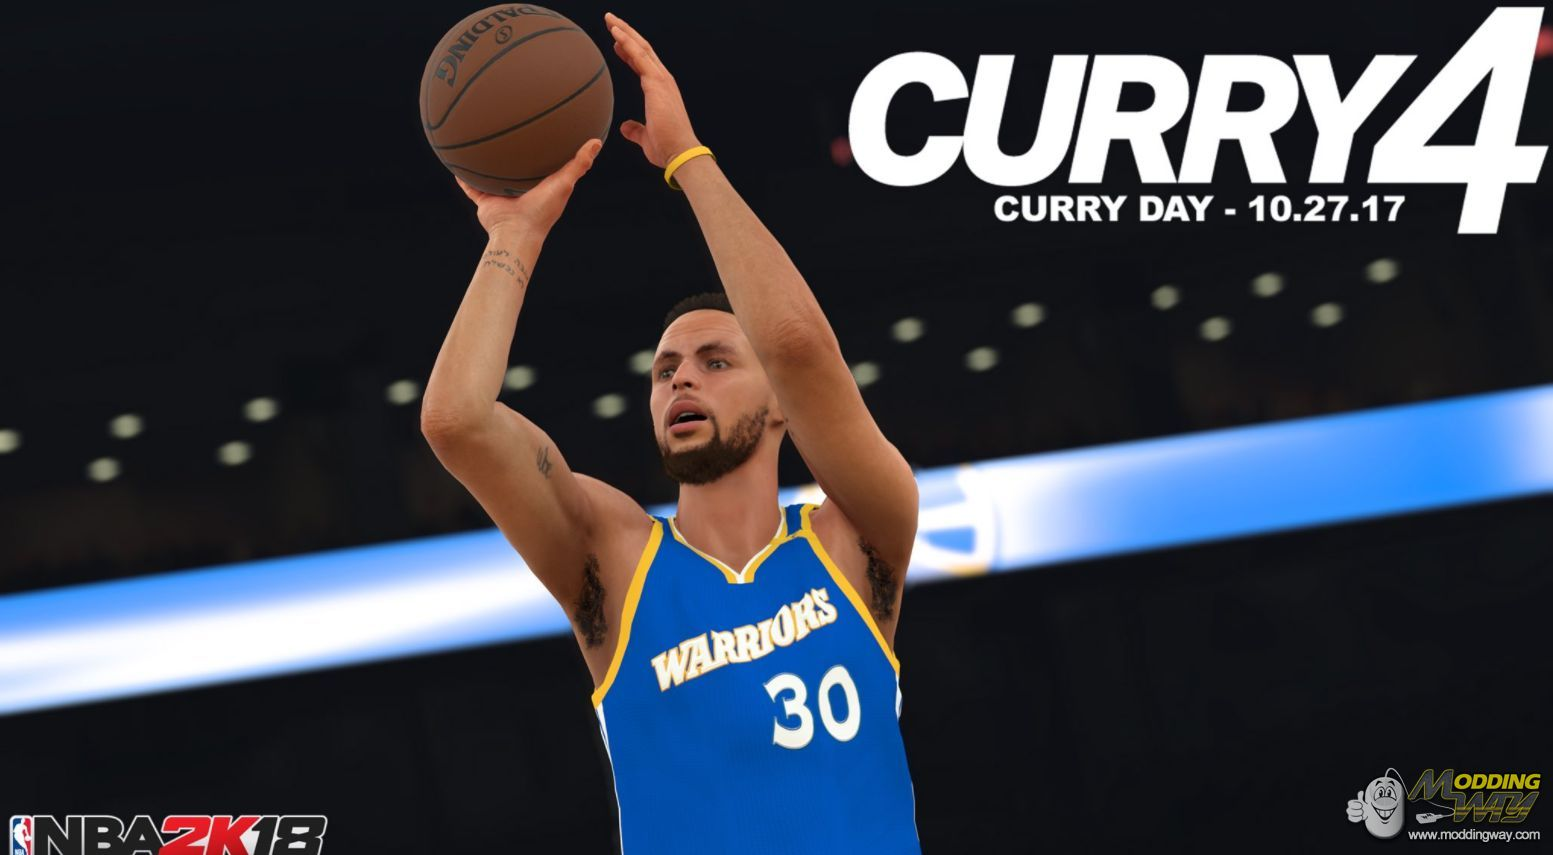 Nba 2k18 official roster update download   Rosters  2019-06-17